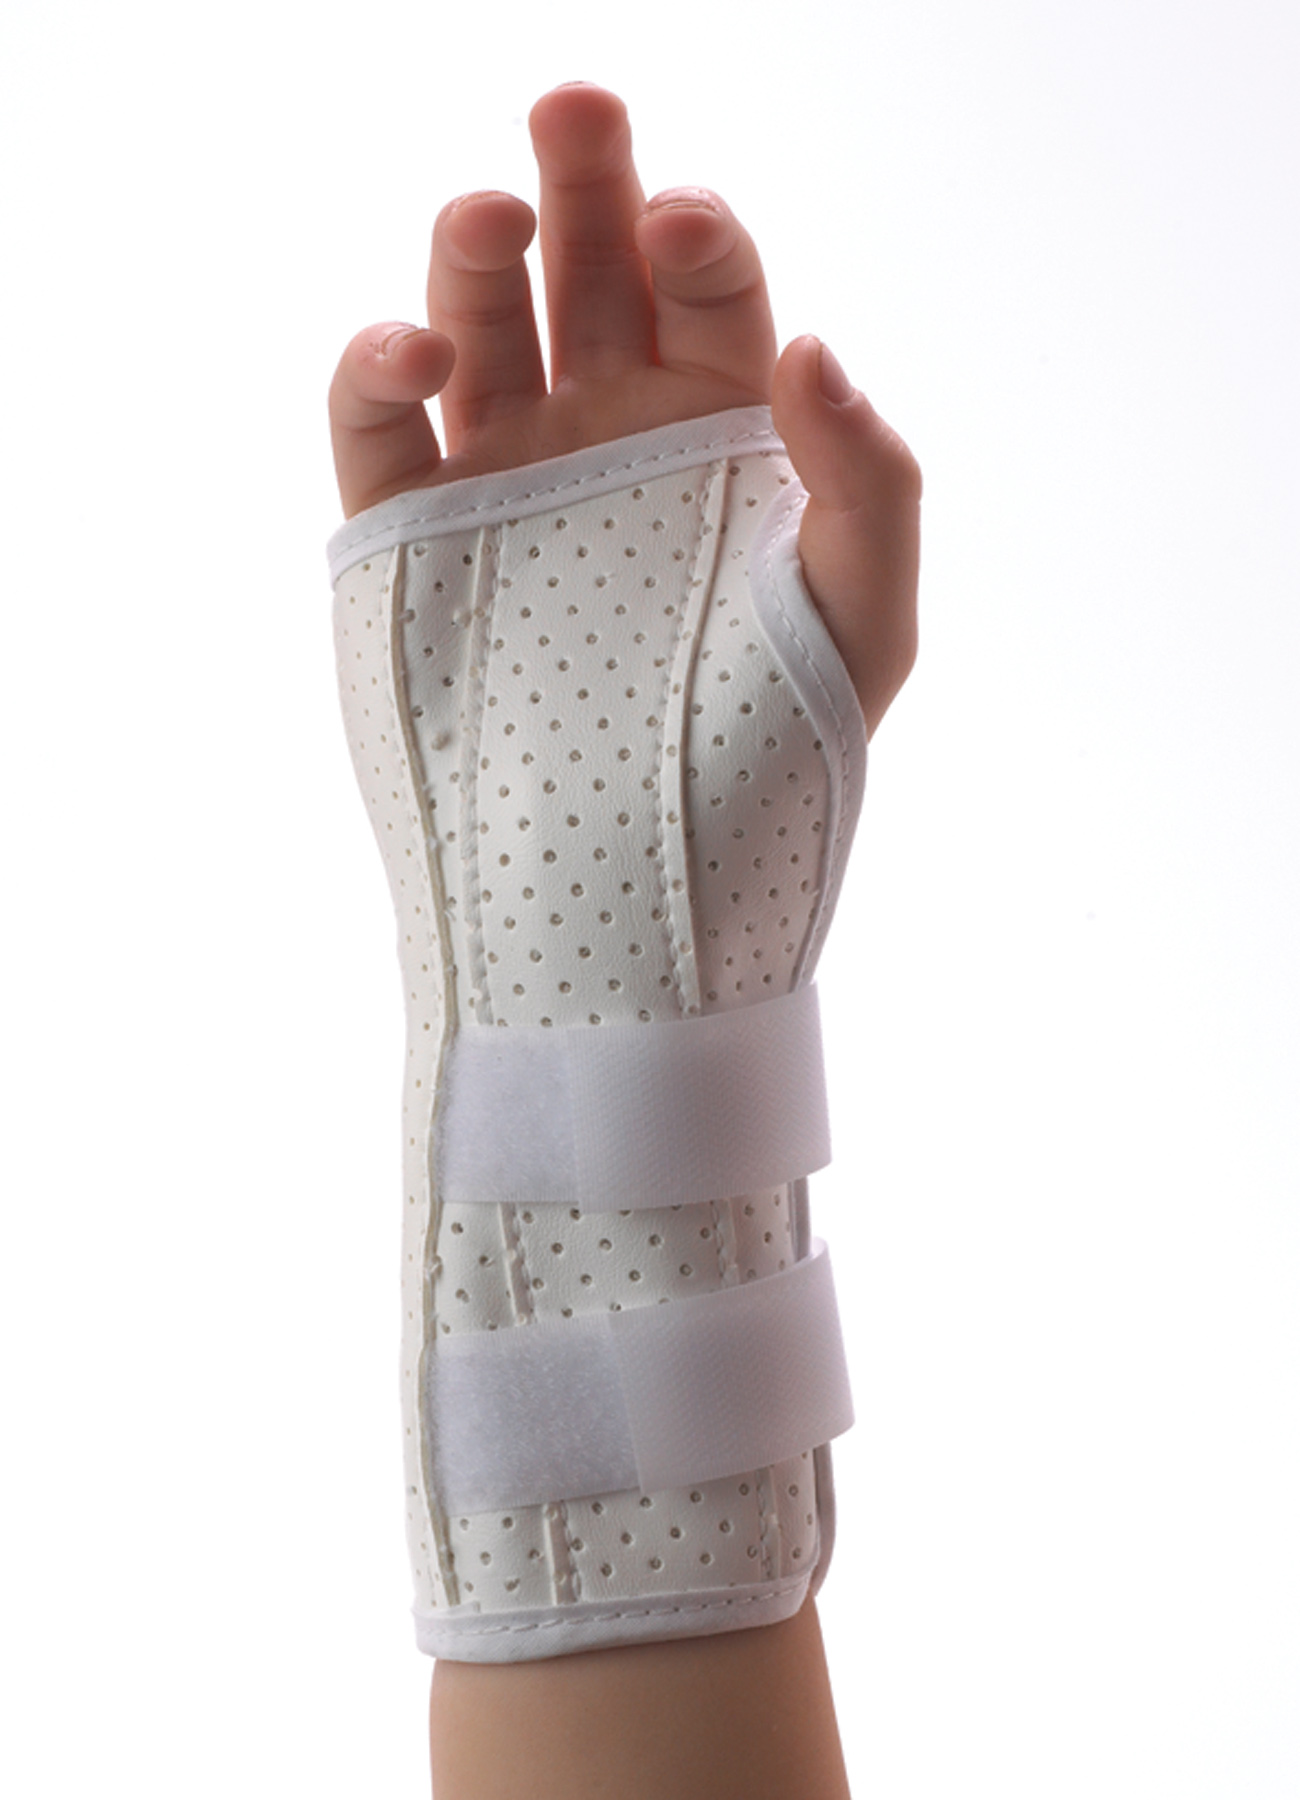 Signature and Ultra Vinyl Wrist Splint